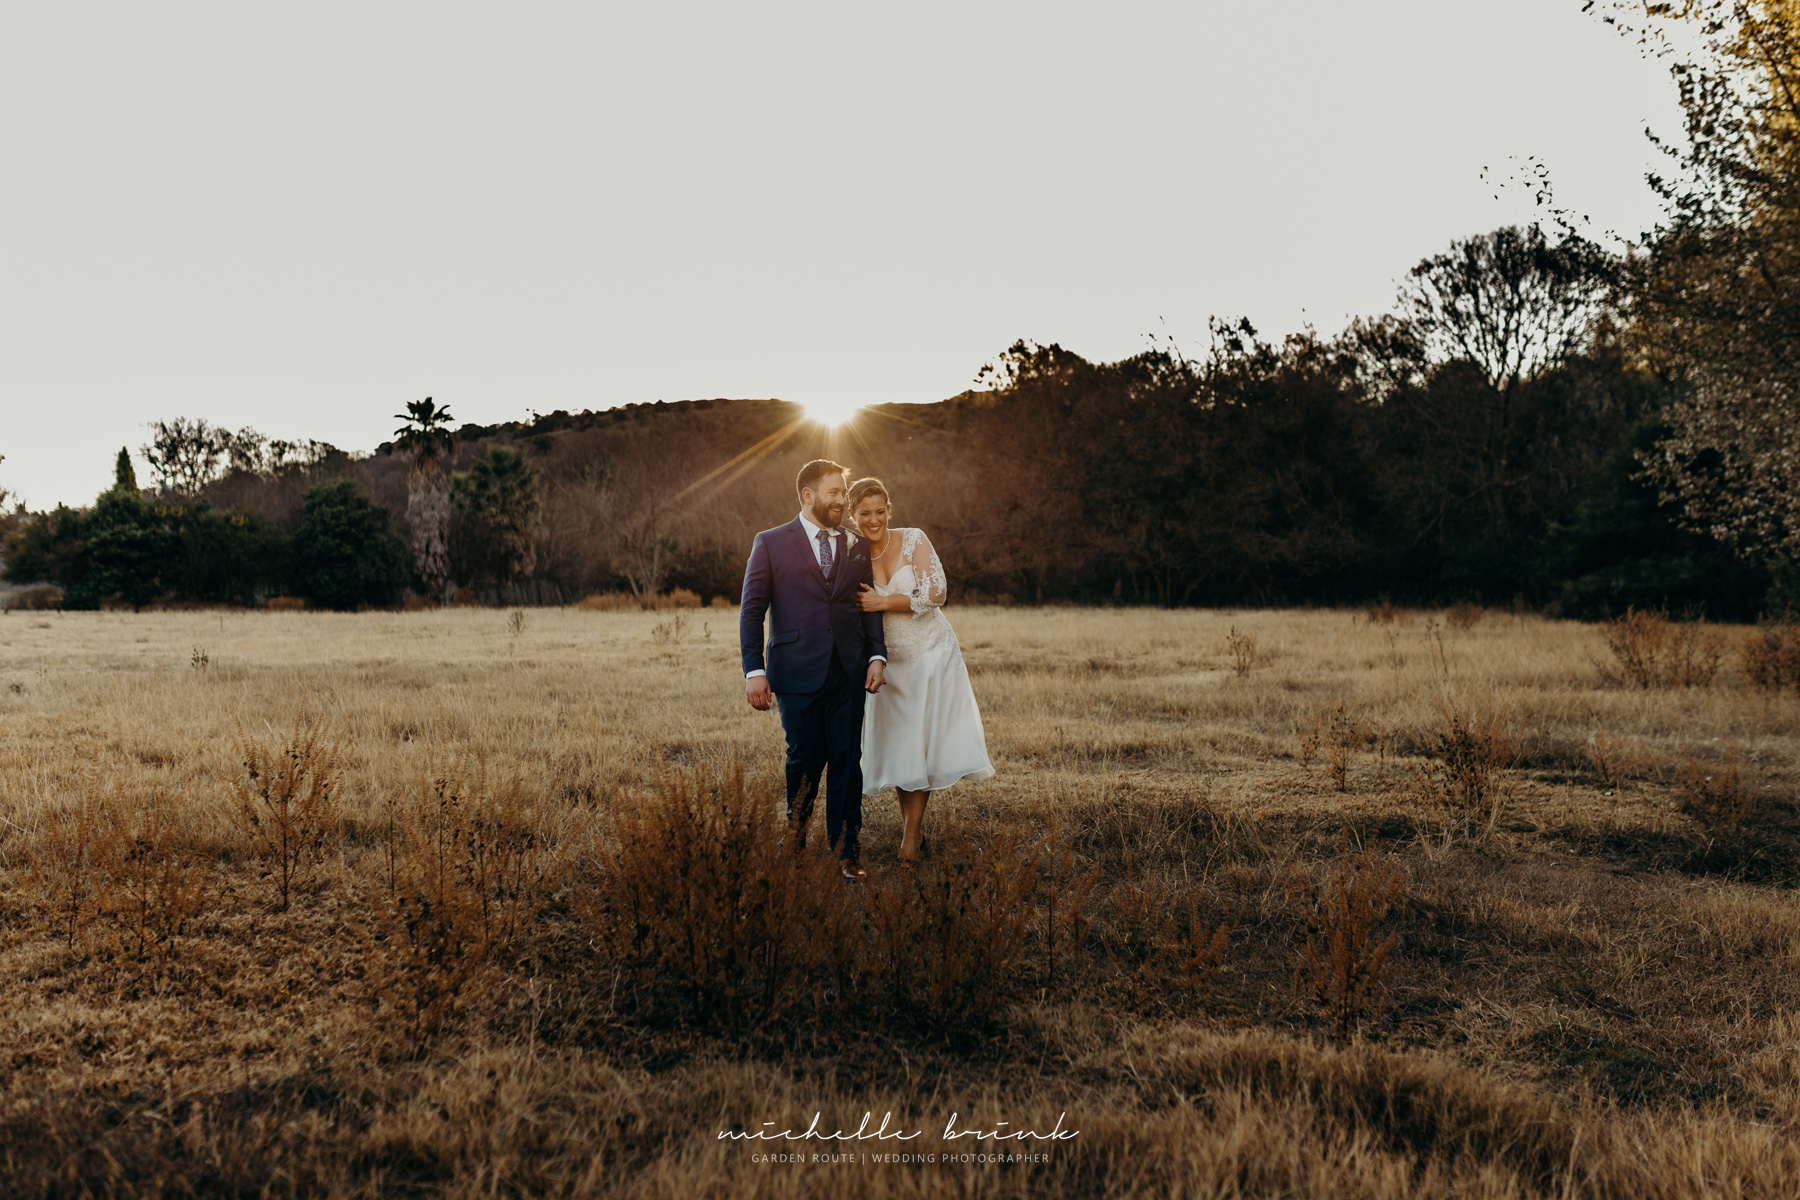 Michelle Brink Wedding Photographer Garden Route Plettenberg Bay